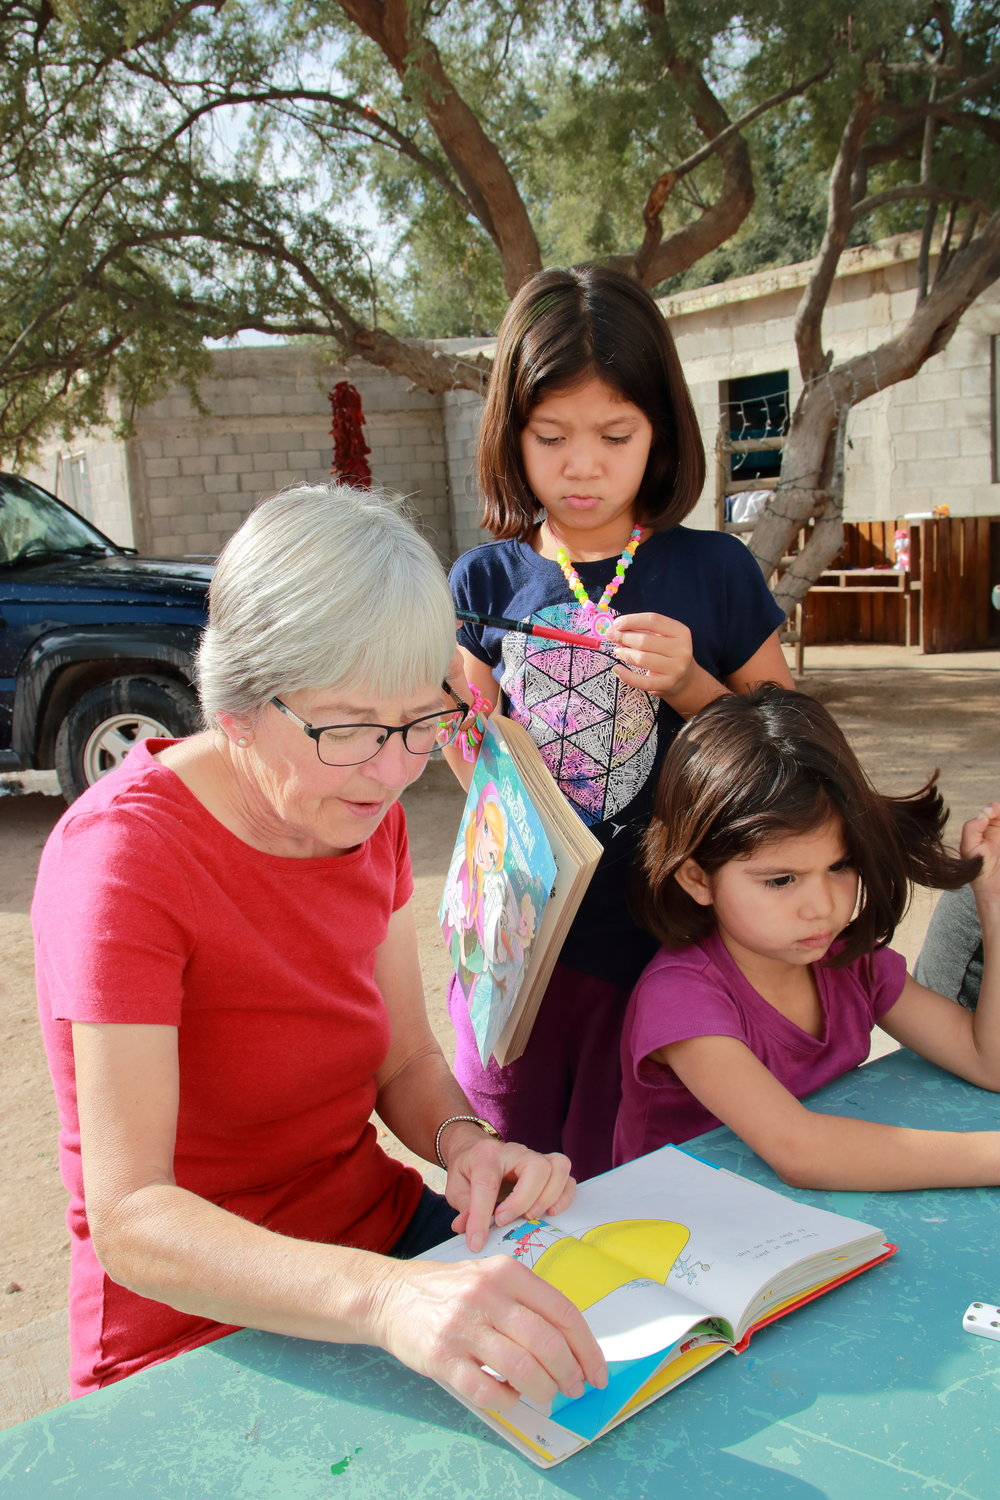 Twice a week Lucy helps out at a Children's Home - There are 27 kids at this Casa Hogar.